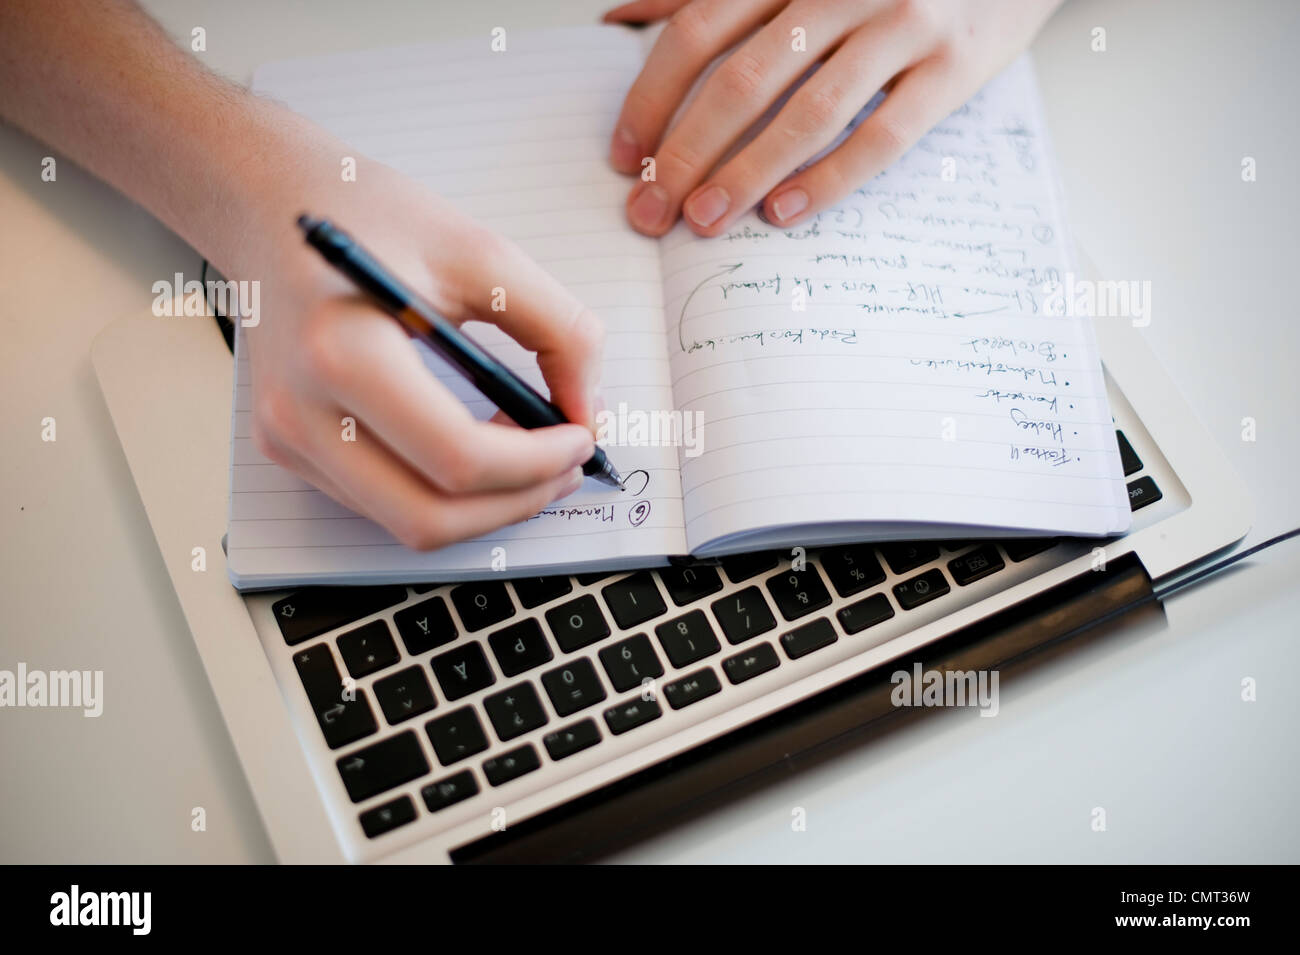 Close-up of human hand writing in notebook - Stock Image